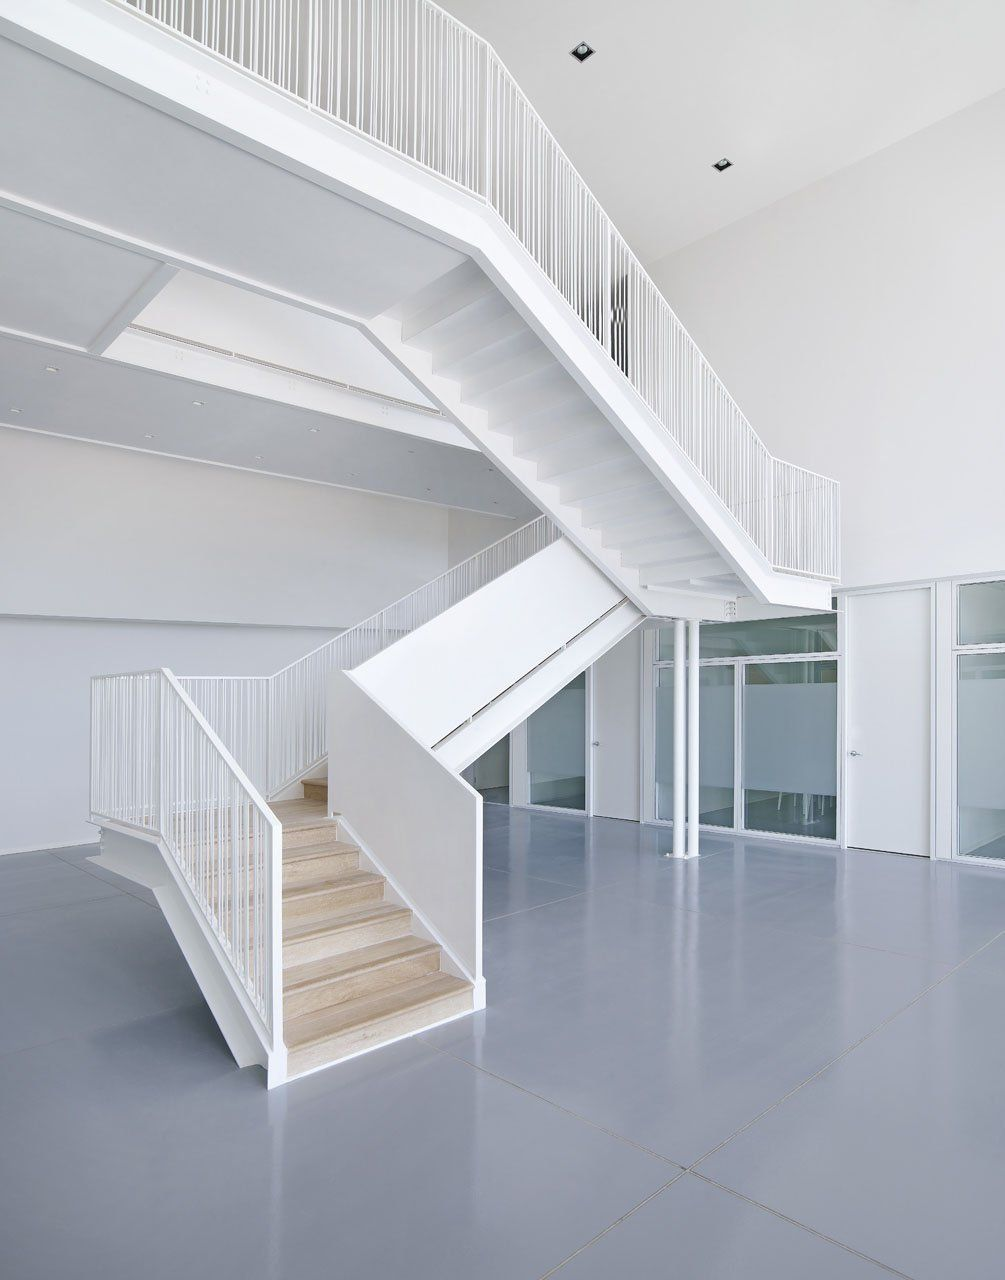 Metal pan stair cool office spaces pinterest for Office stairs design